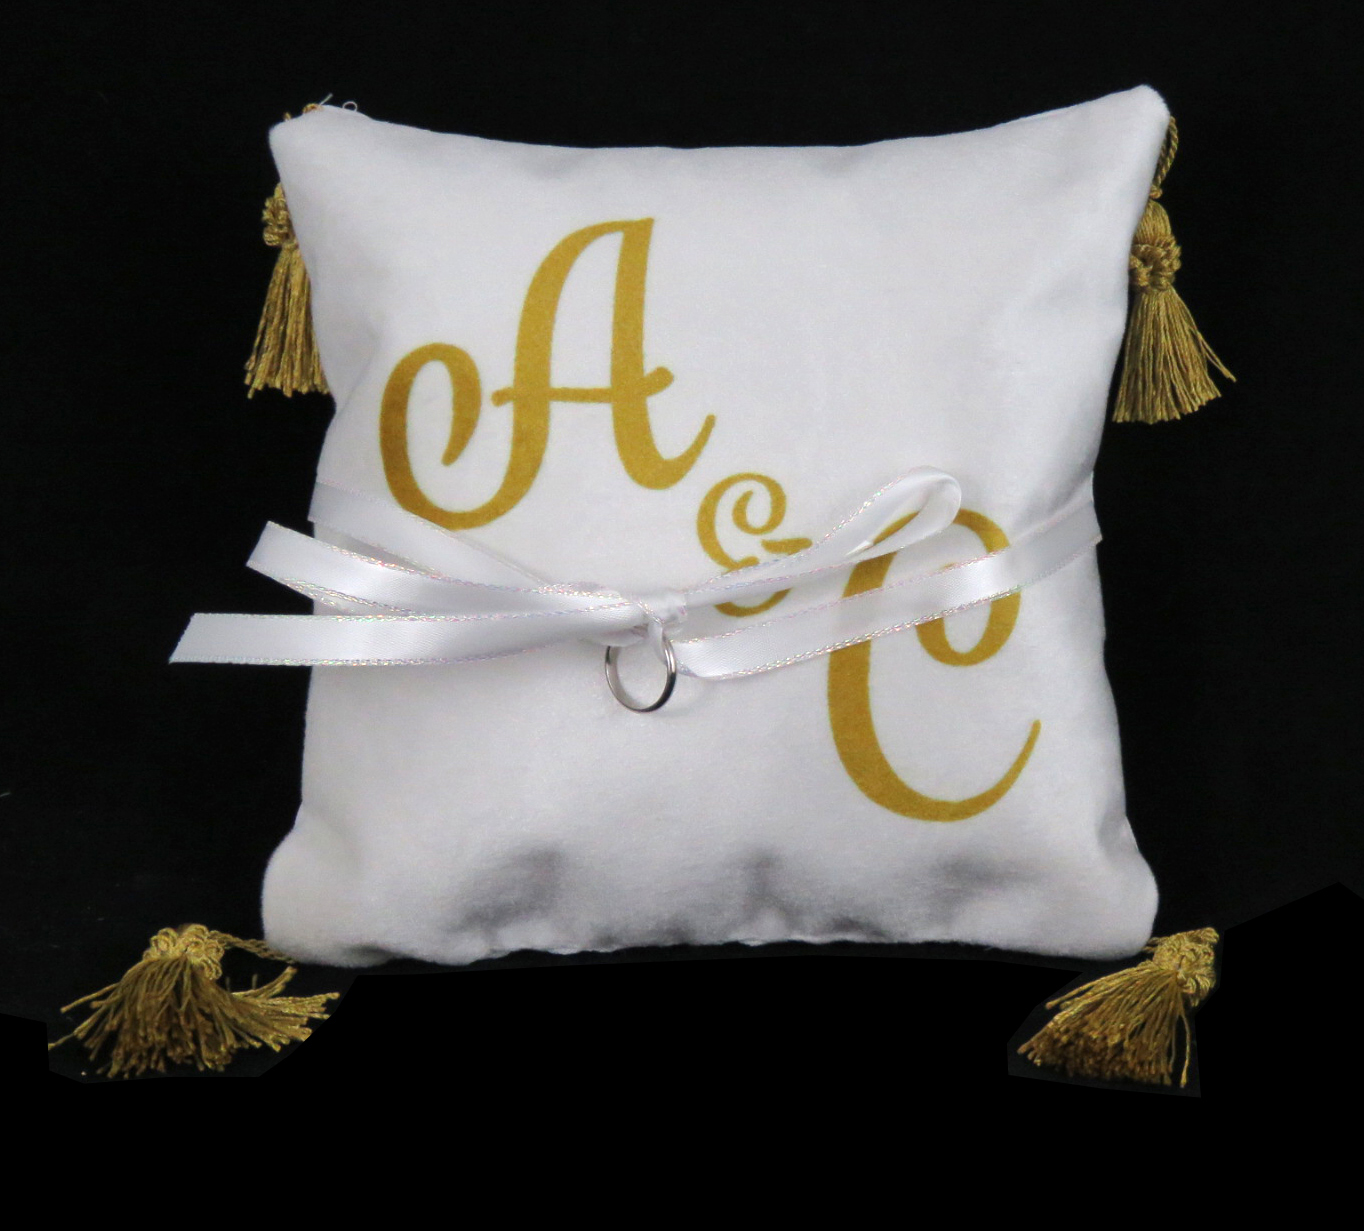 RING BEARER PILLOW - CLICK FOR MORE EXAMPLES